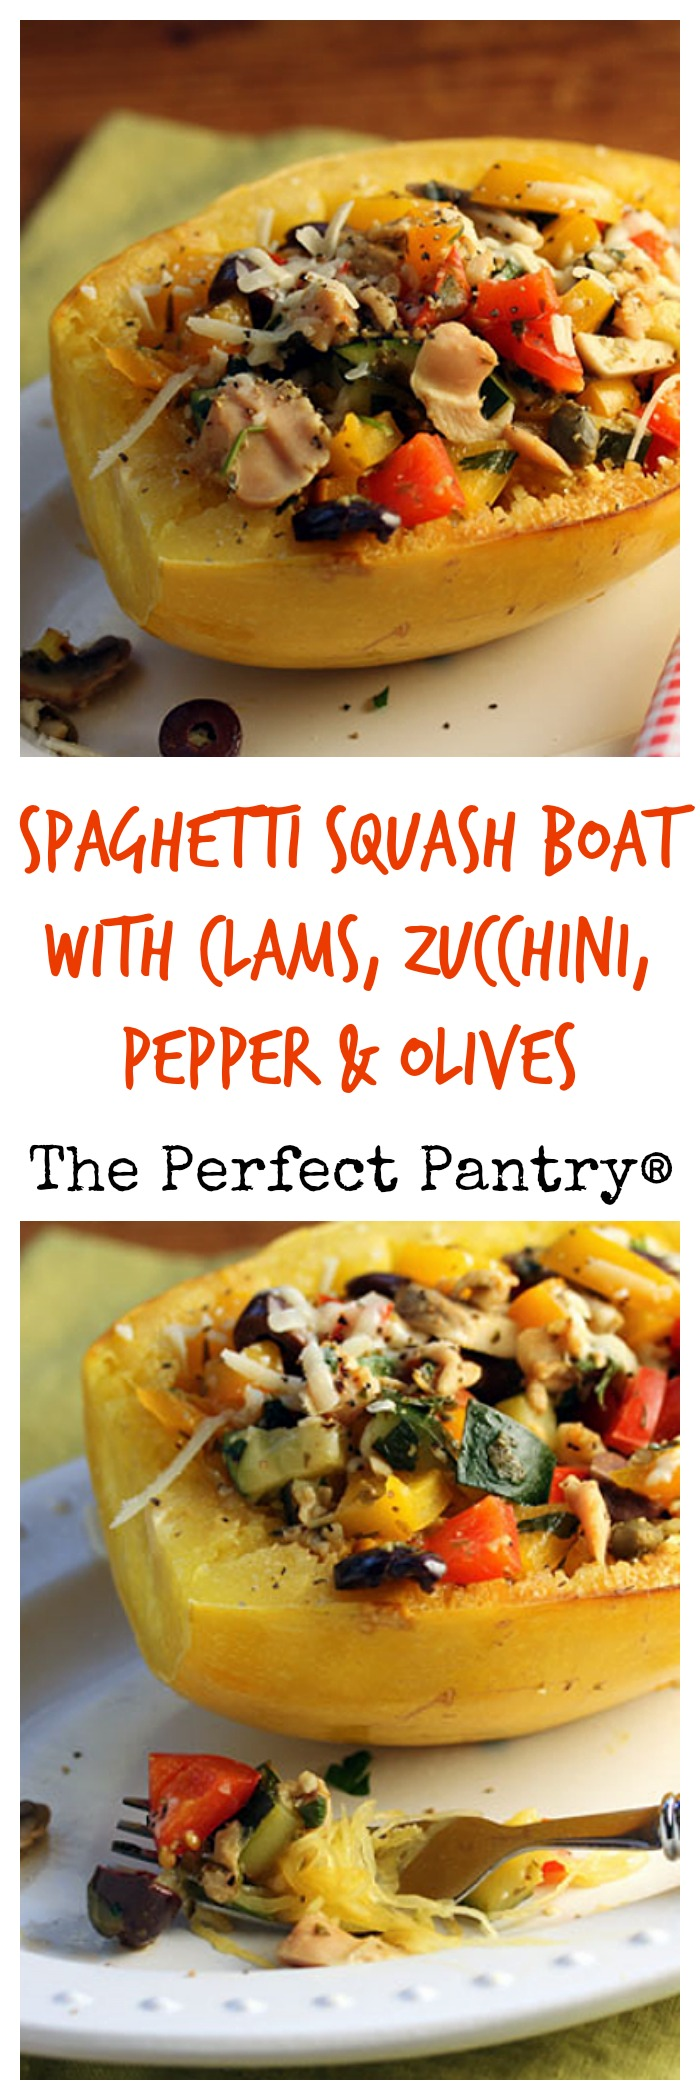 Spaghetti squash boat filled with clams, zucchini, bell peppers and olives: my grandkids loved it!